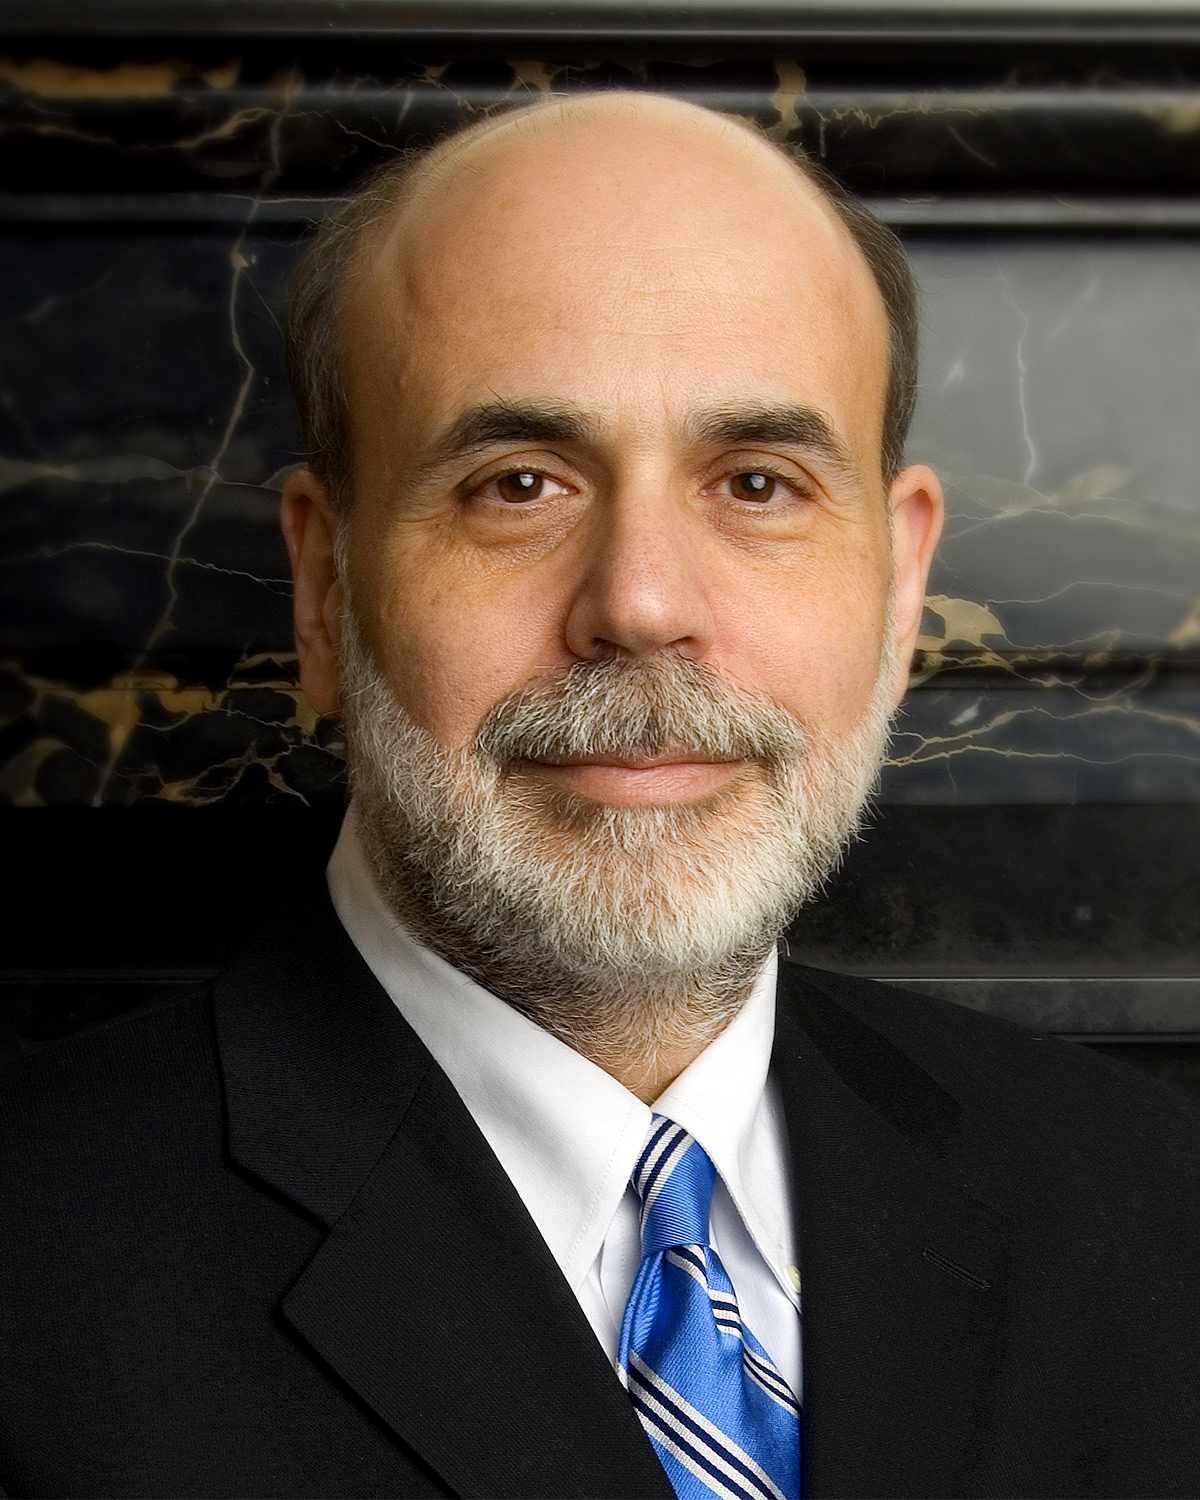 The 66-year old son of father Philip Bernanke and mother Edna Bernanke Ben Bernanke in 2020 photo. Ben Bernanke earned a million dollar salary - leaving the net worth at 2 million in 2020